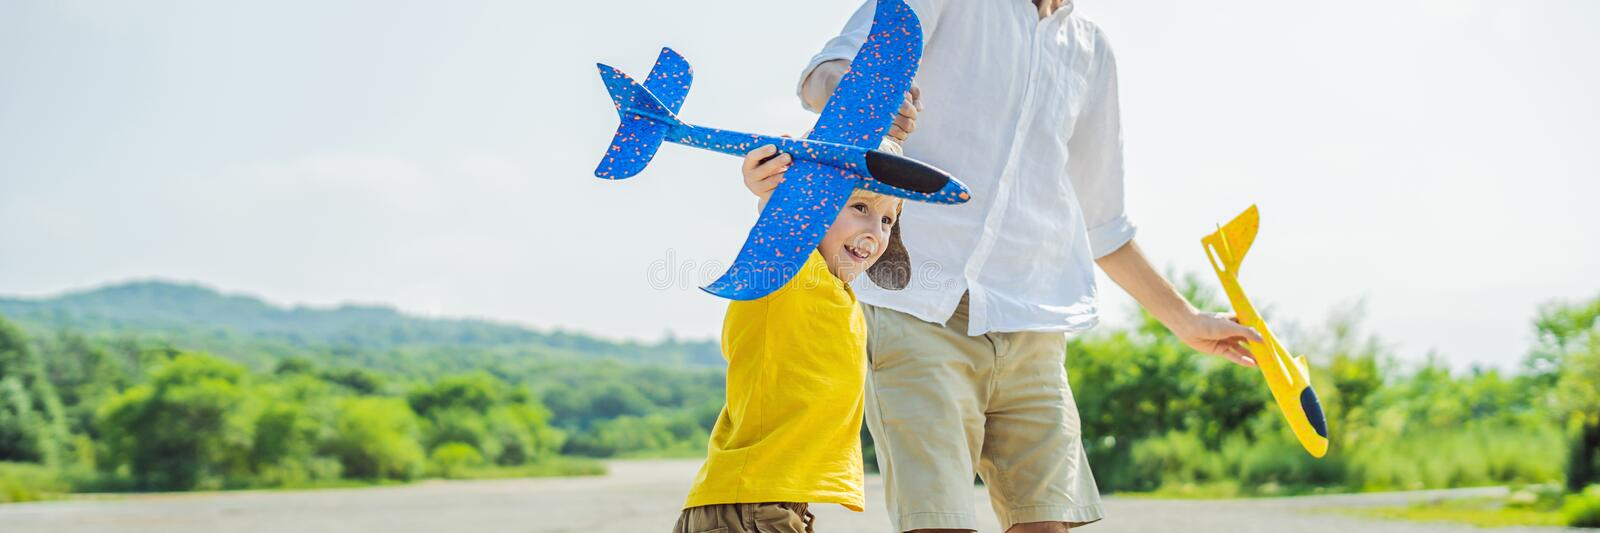 Happy father and son playing with toy airplane against old runway background. Traveling with kids concept BANNER, LONG FORMAT. Happy father and son playing with stock image